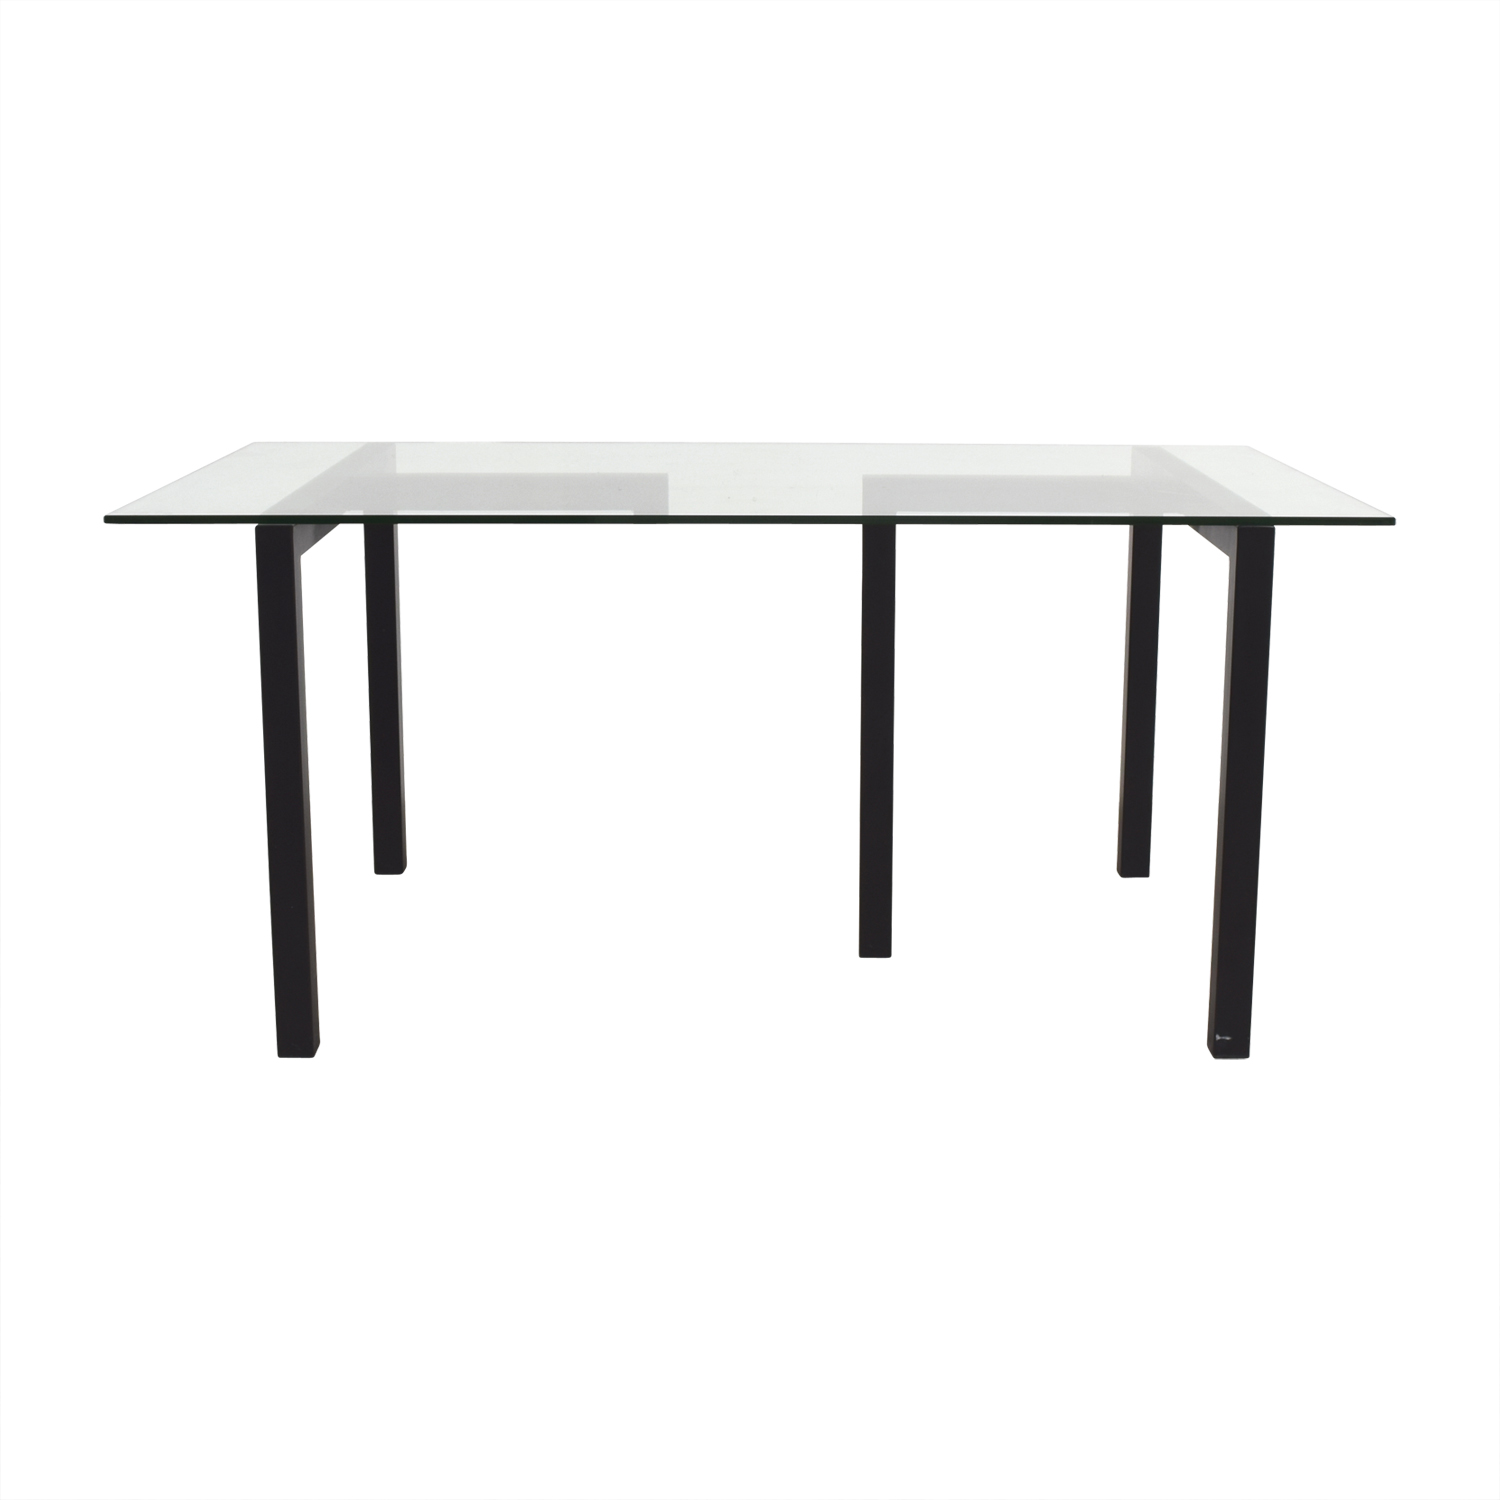 Crate & Barrel Crate & Barrel Tempered Glass Table discount